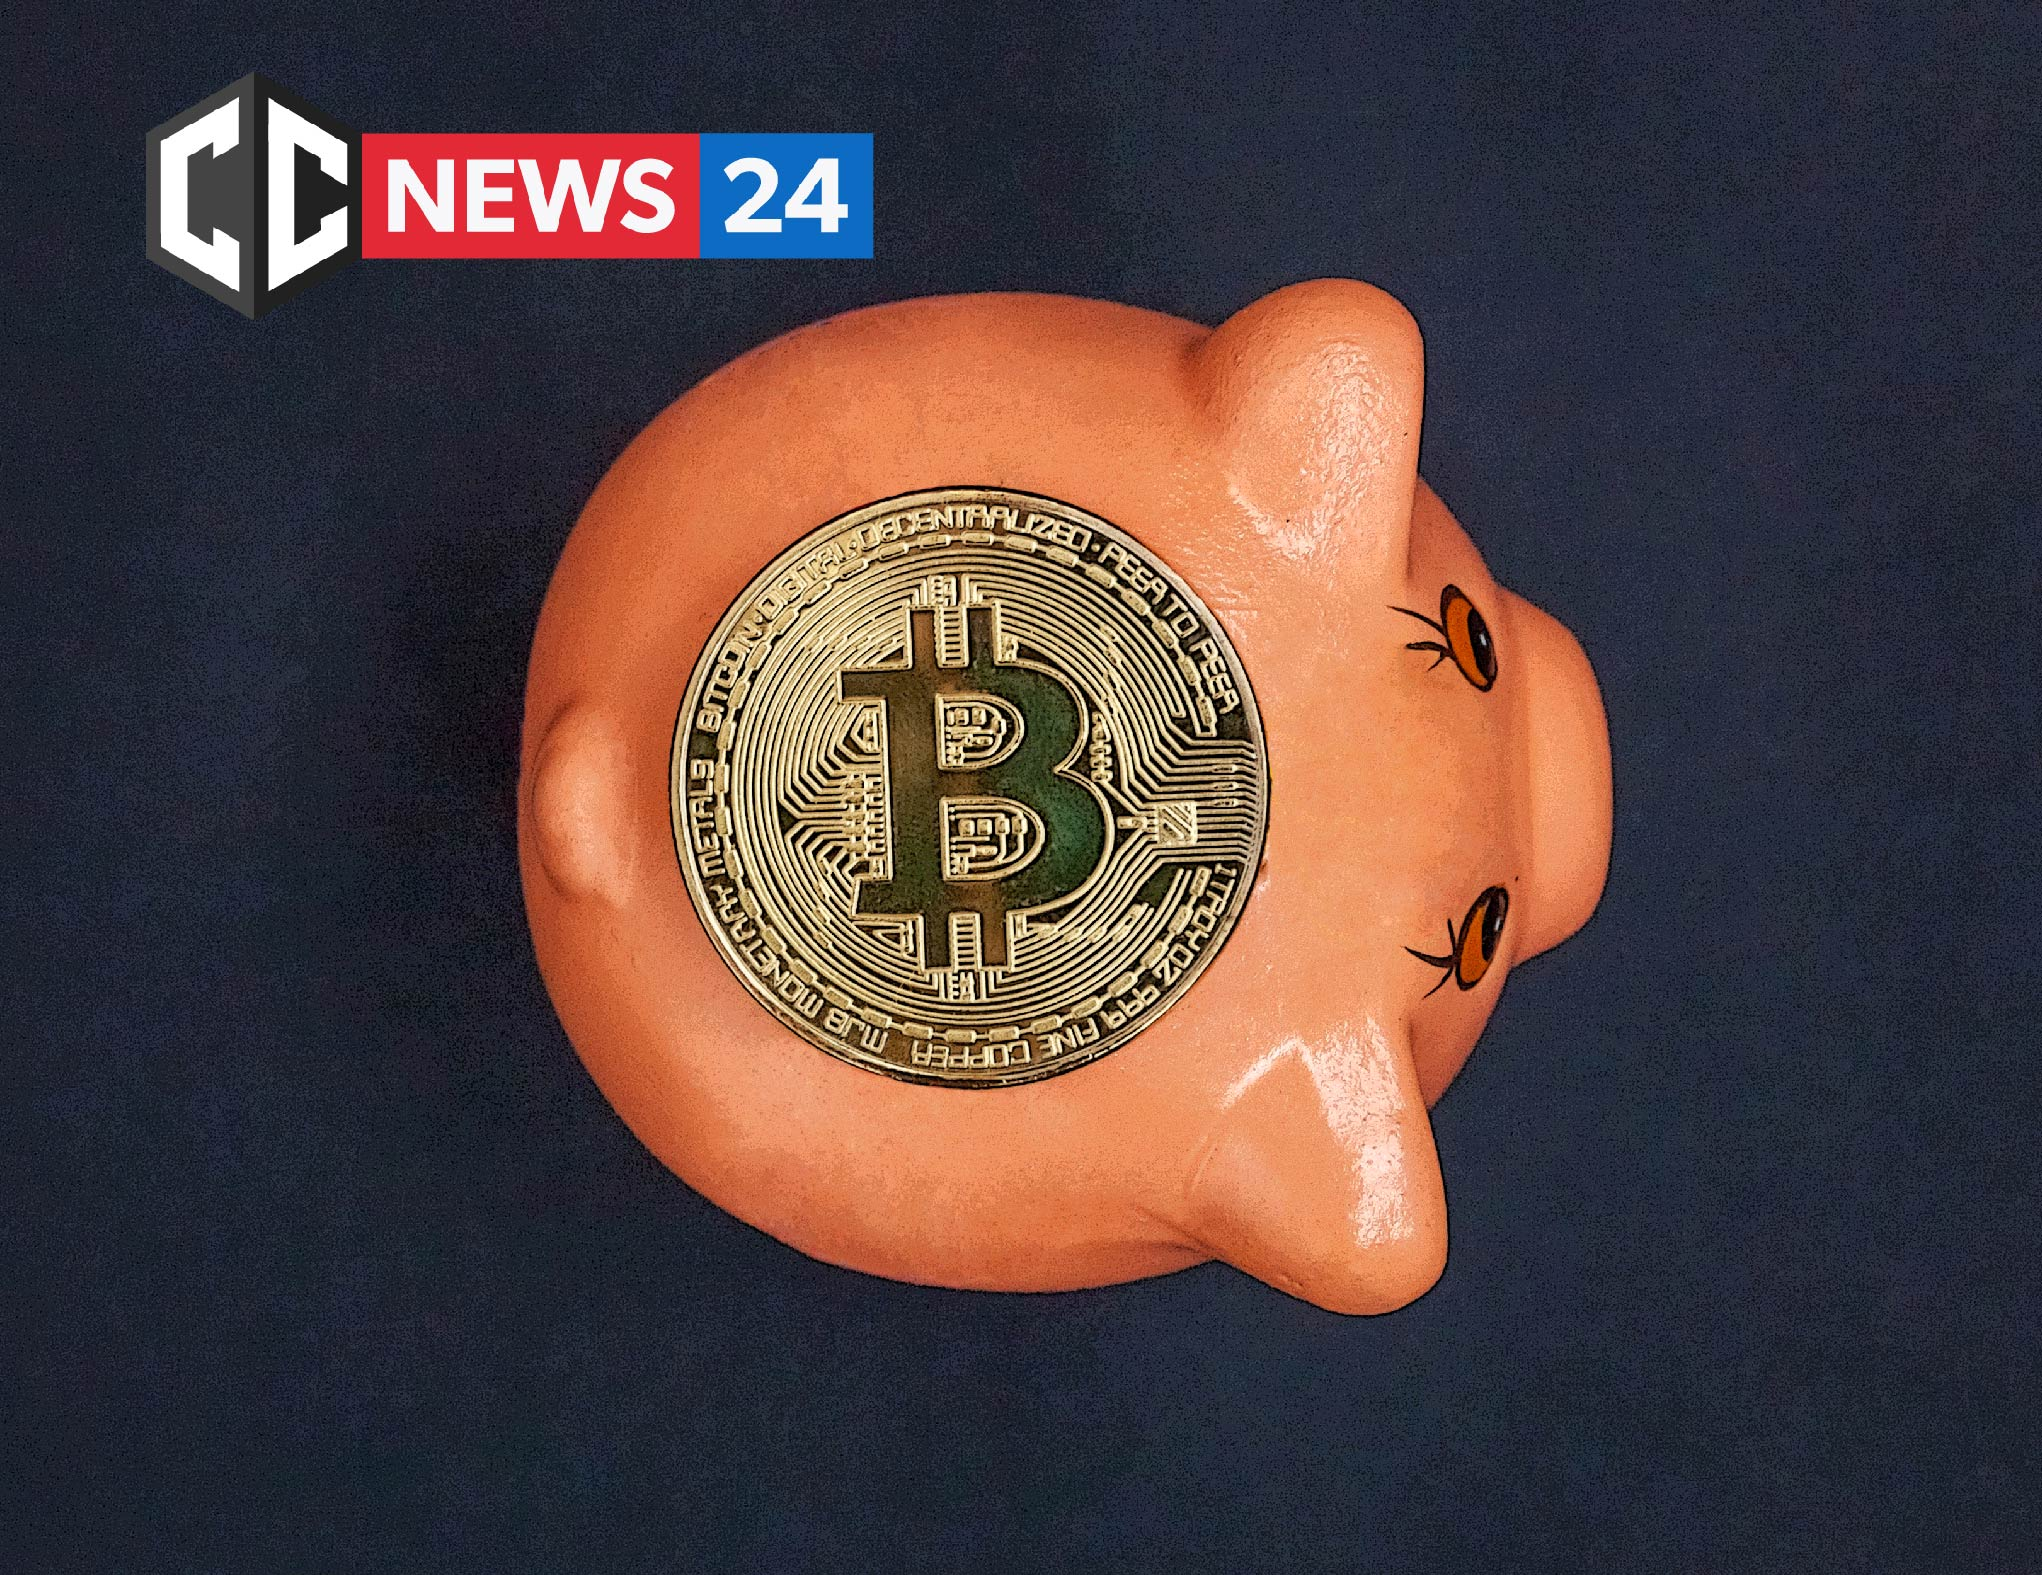 The Swiss insurer AXA allows customers to pay in Bitcoins